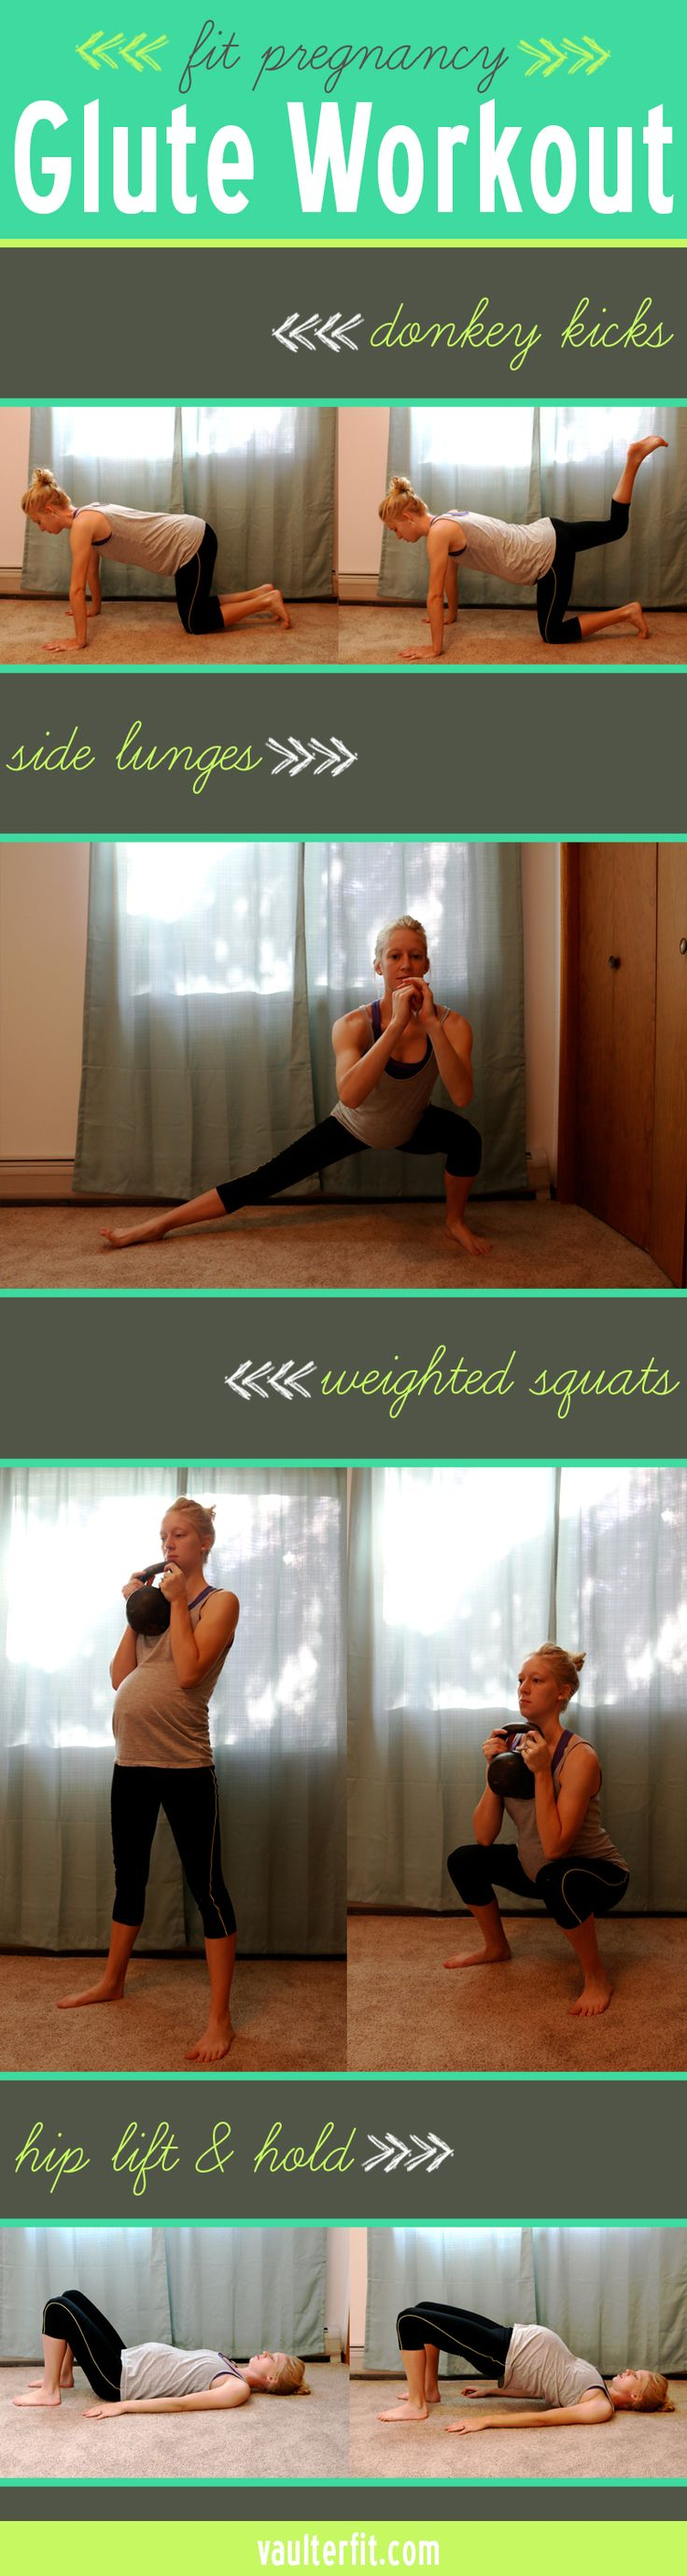 Glute workout for a fit pregnancy!